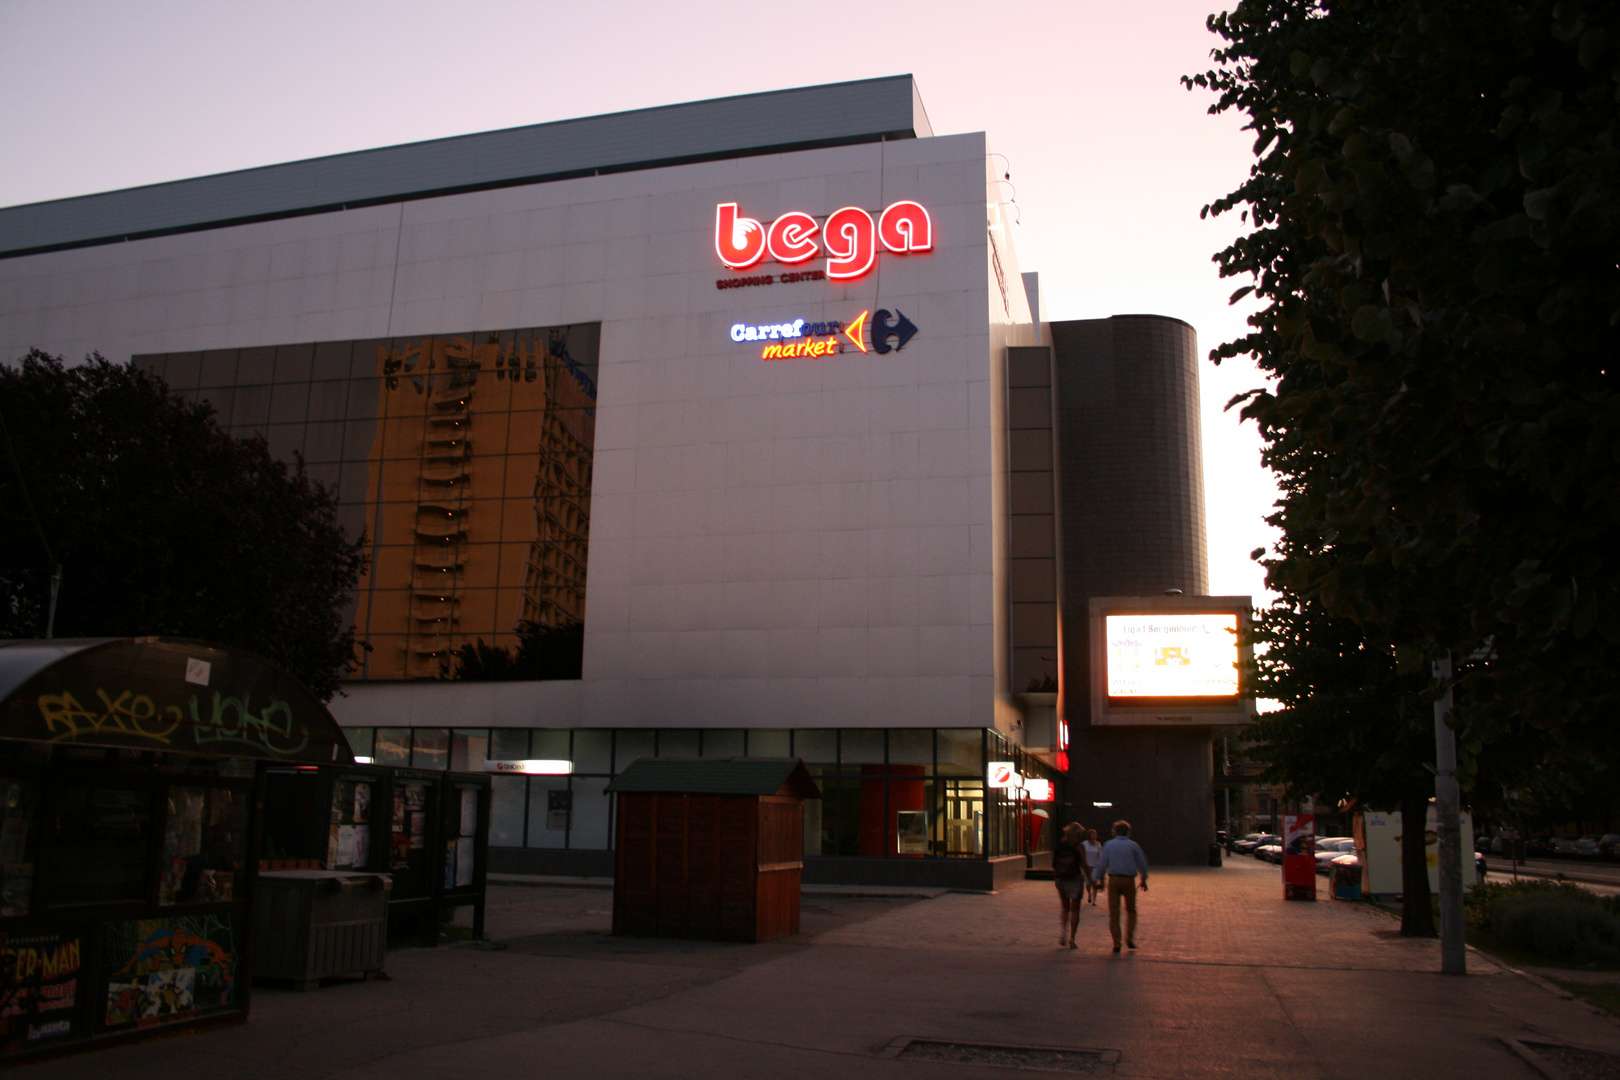 Bega Shopping Center - Timisoara